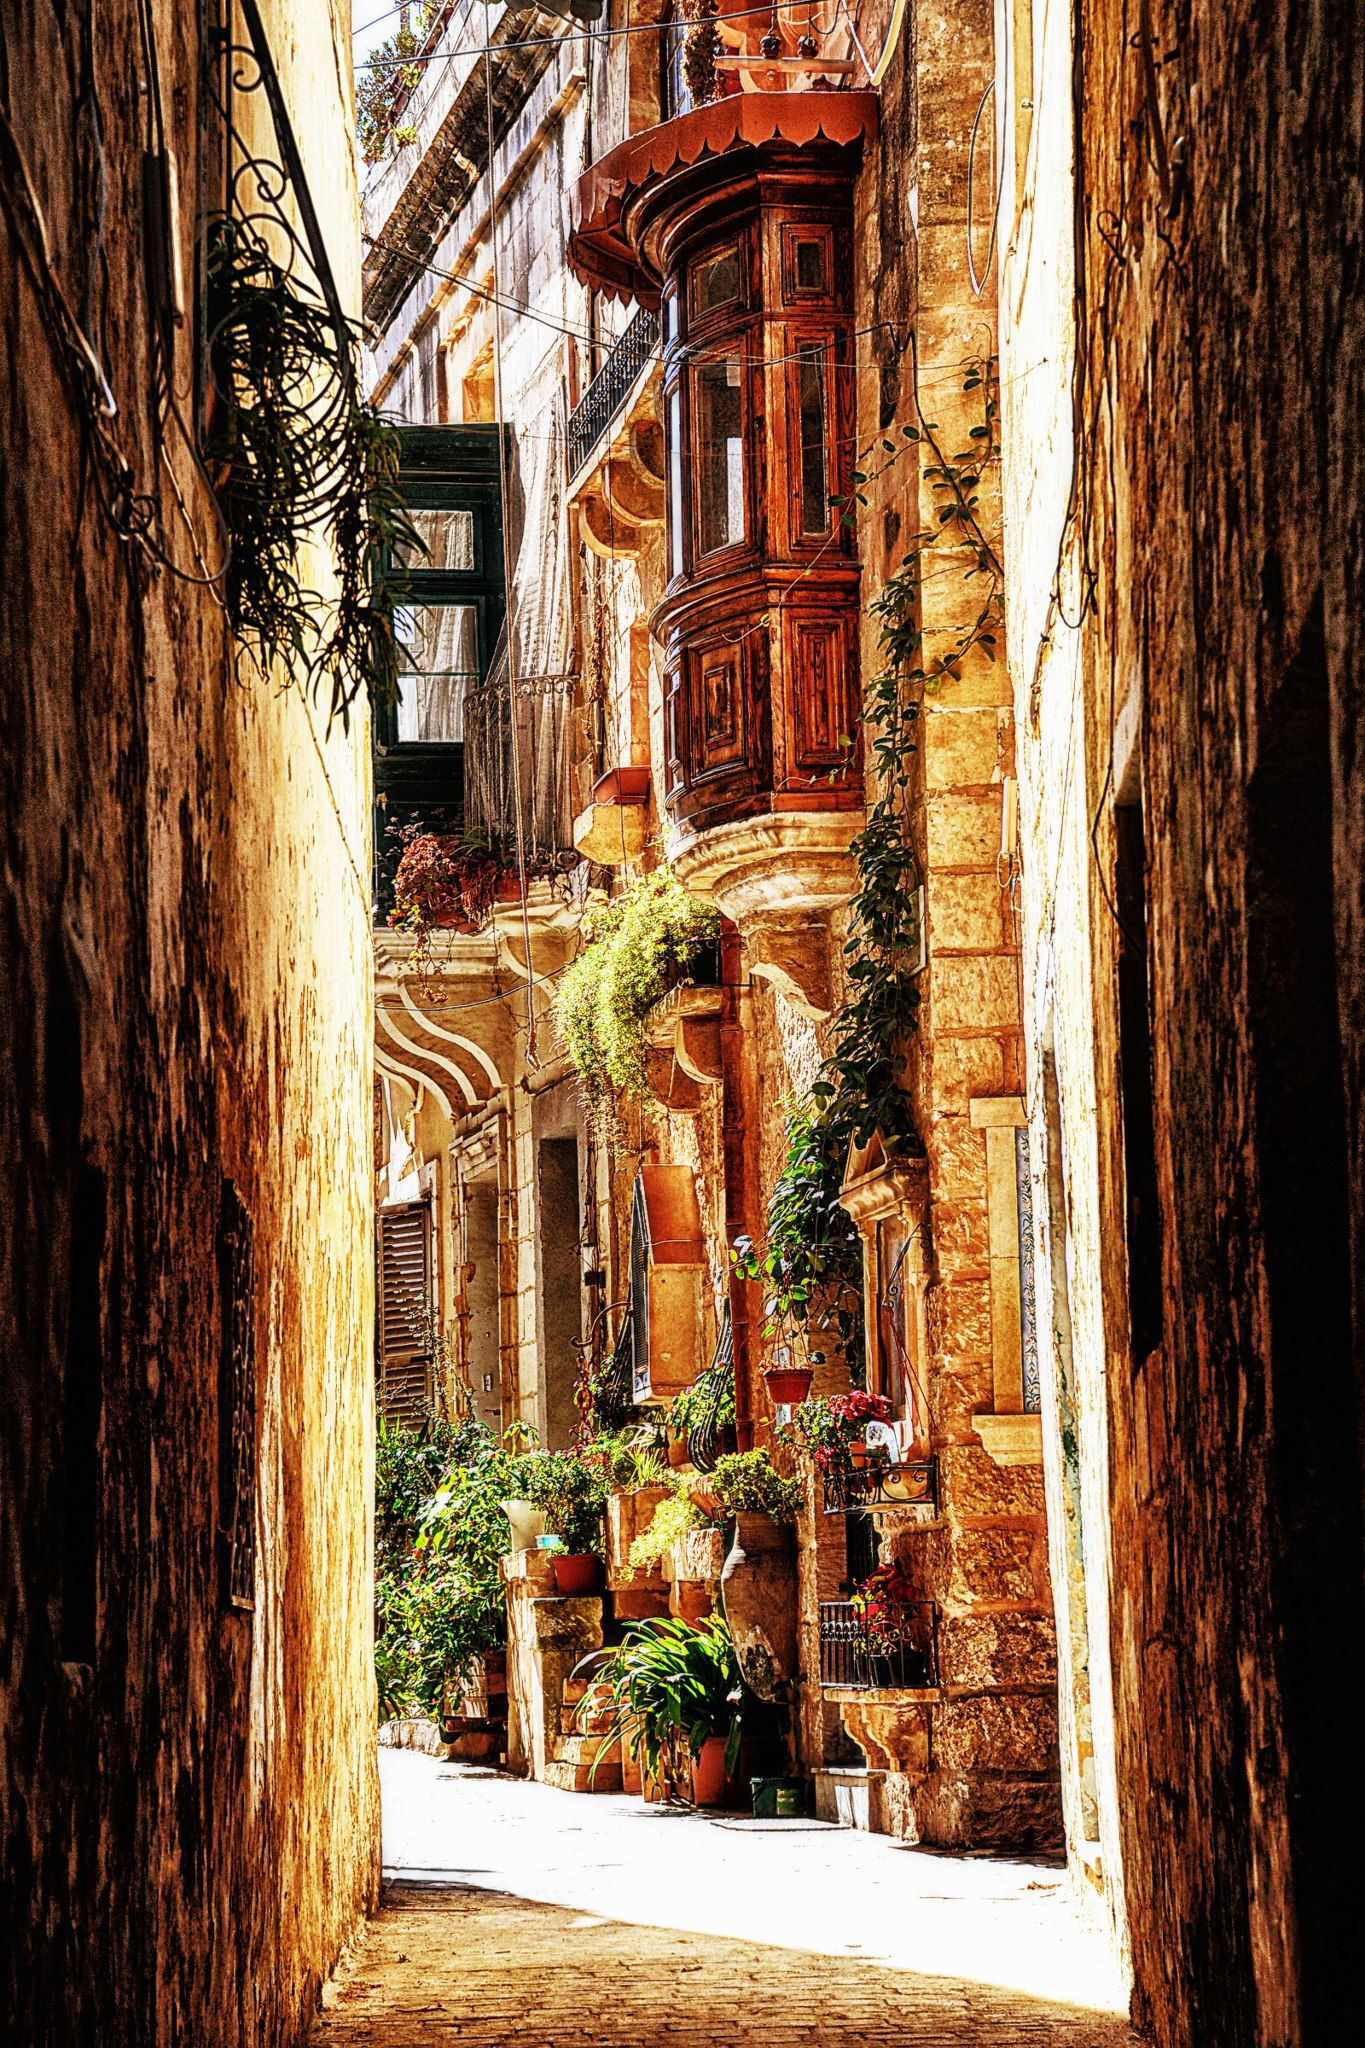 Mdina's labyrinthine alleyways make it ideal for exploring on foot or by horse-drawn cart. Malta and Gozo